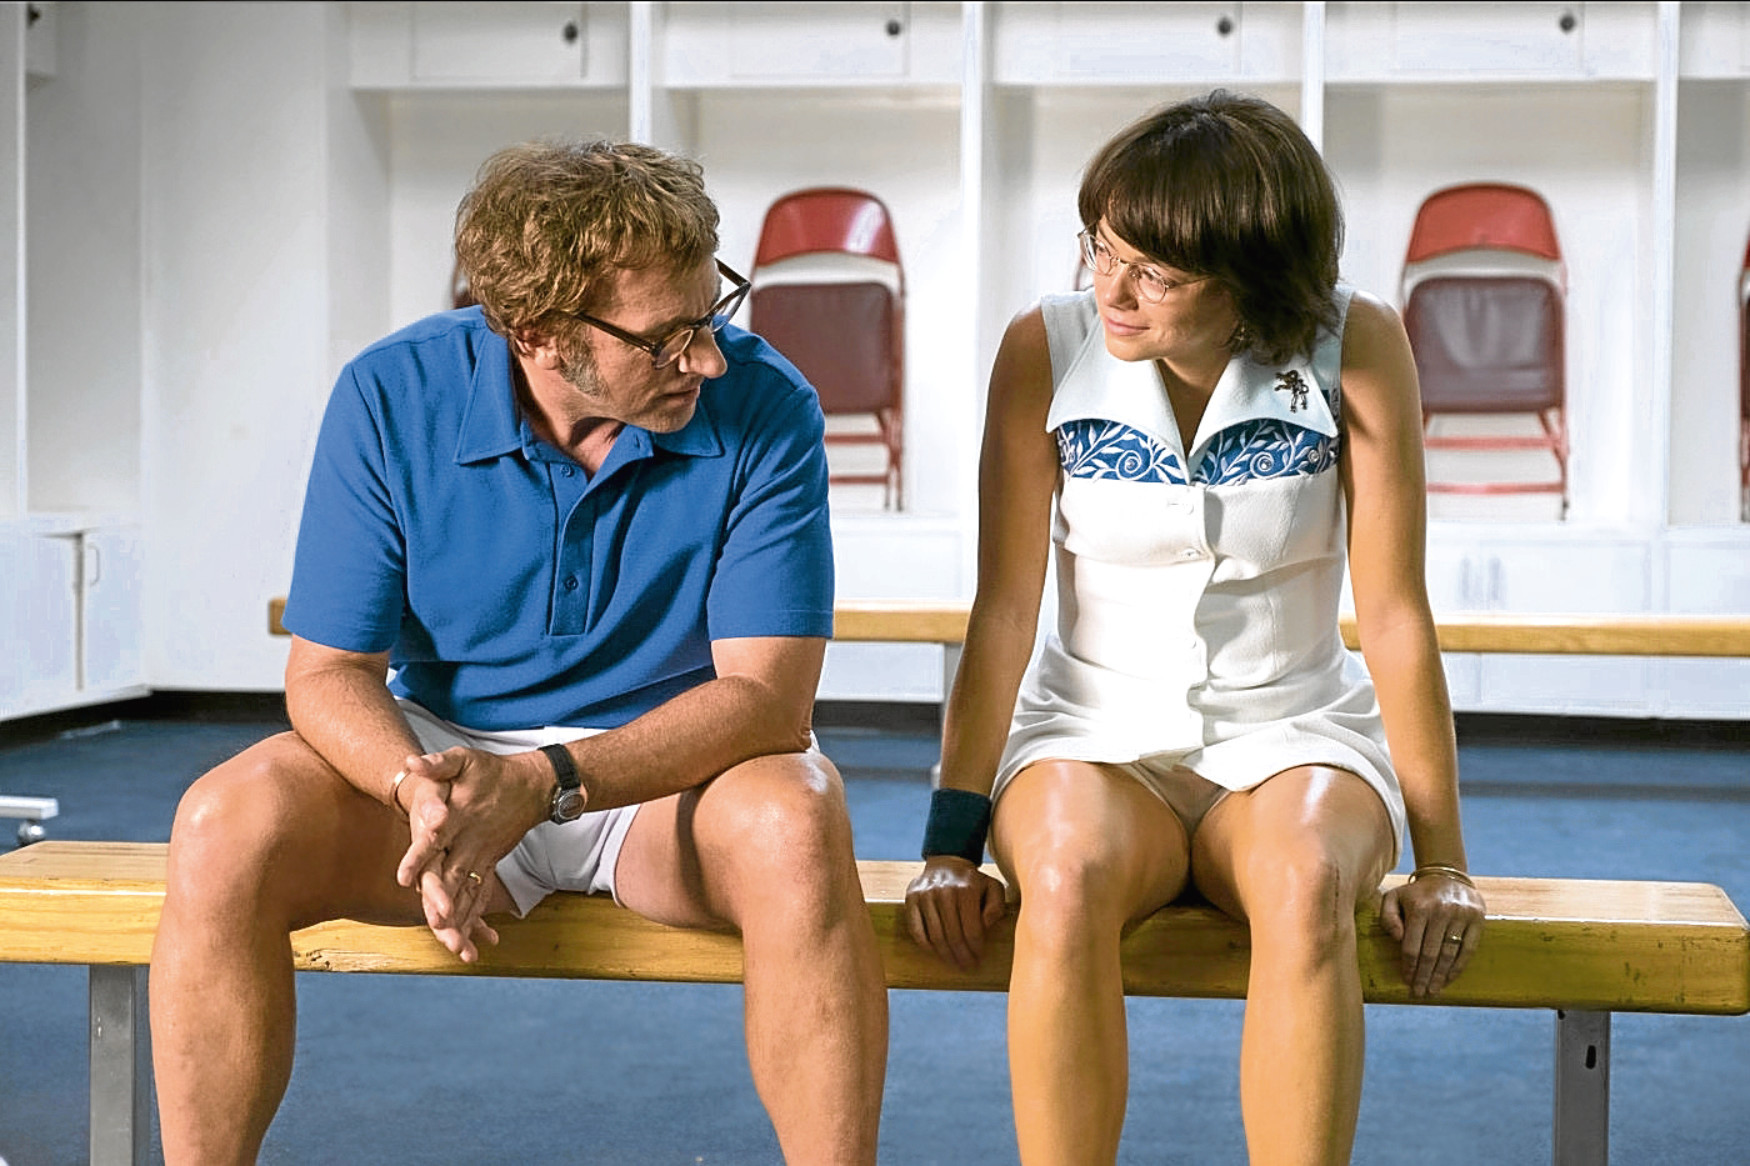 Steve Carell and Emma Stone in Battle of the Sexes (Allstar/FOX SEARCHLIGHT PICTURES )